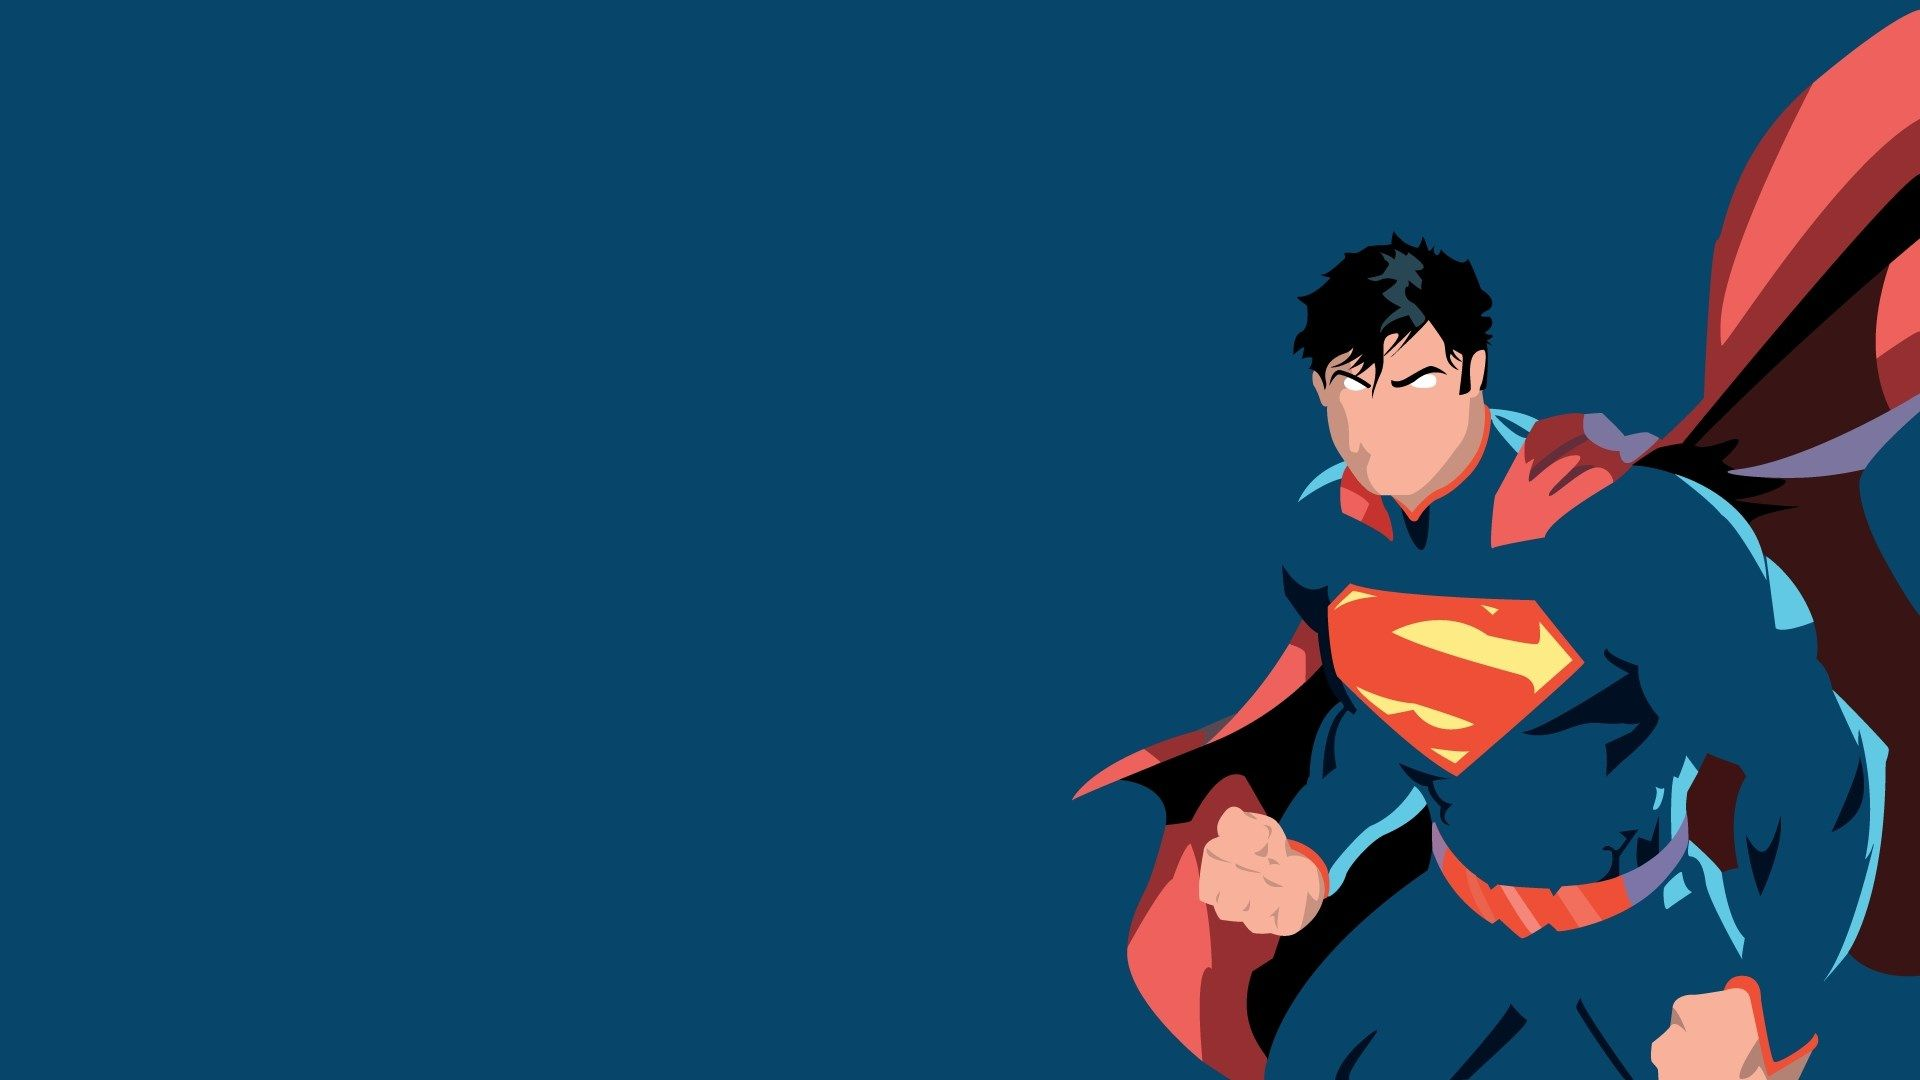 1920x1080 Free Desktop Pictures Superman Superman Wallpaper Dc Comics Wallpaper Superman Hd Wallpaper